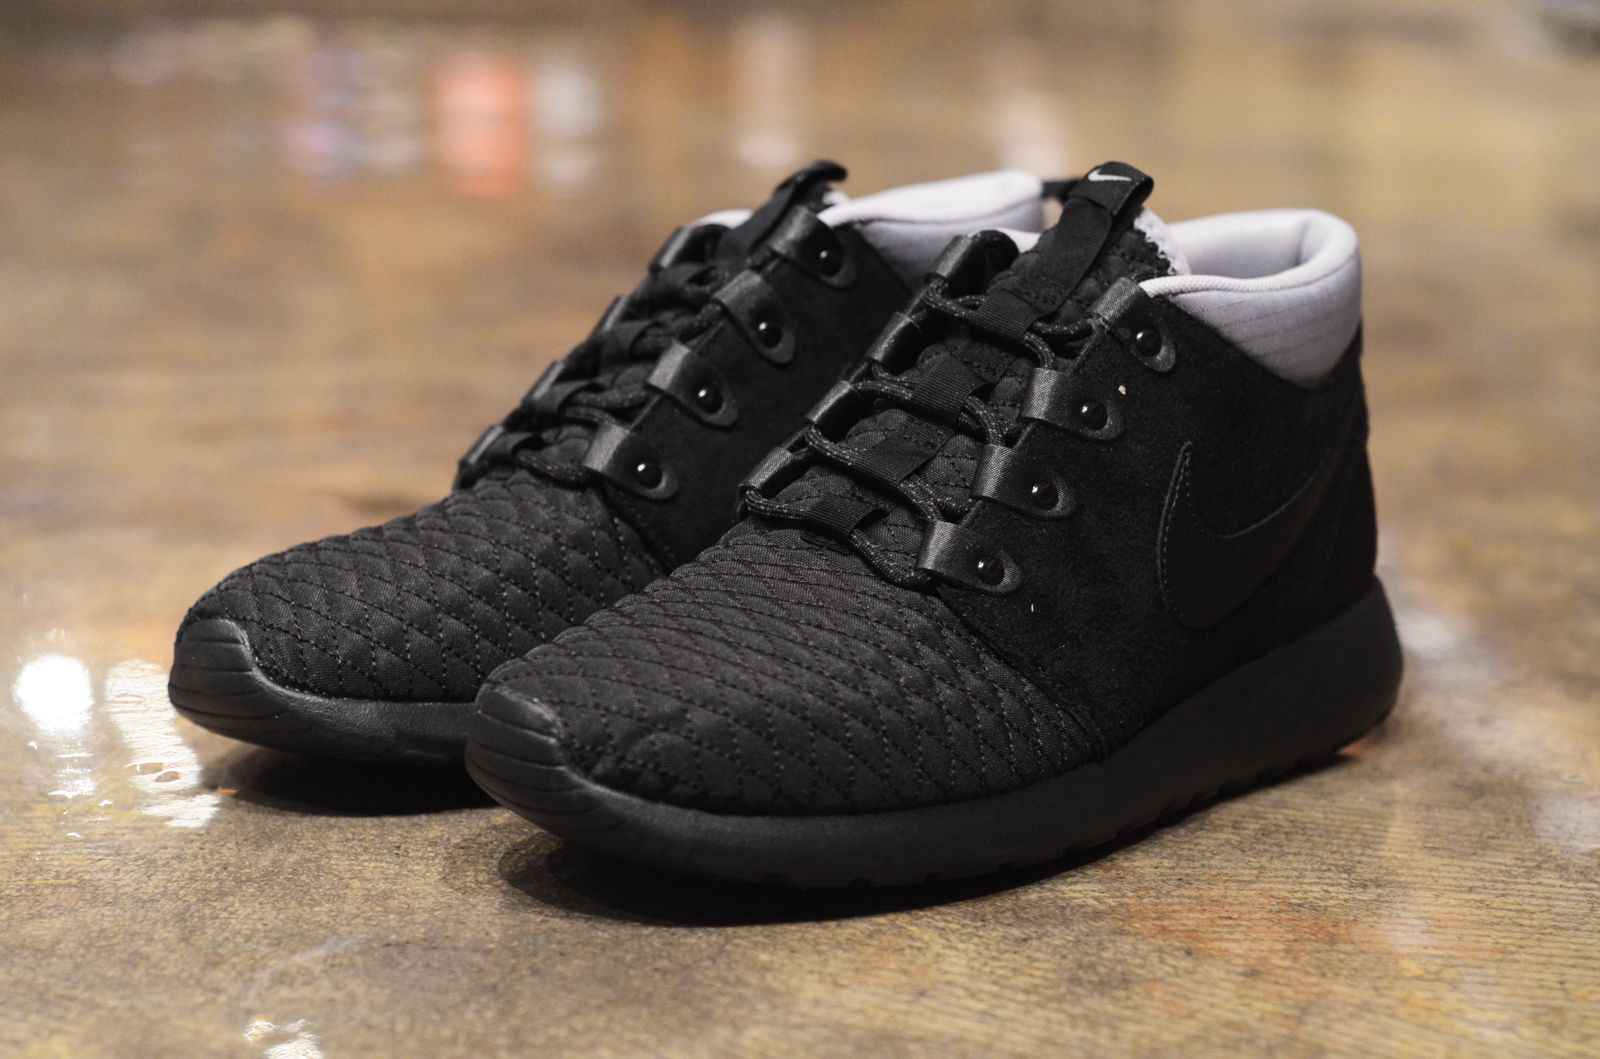 new arrivals a2240 0390e Nike Roshe Run Sneakerboots